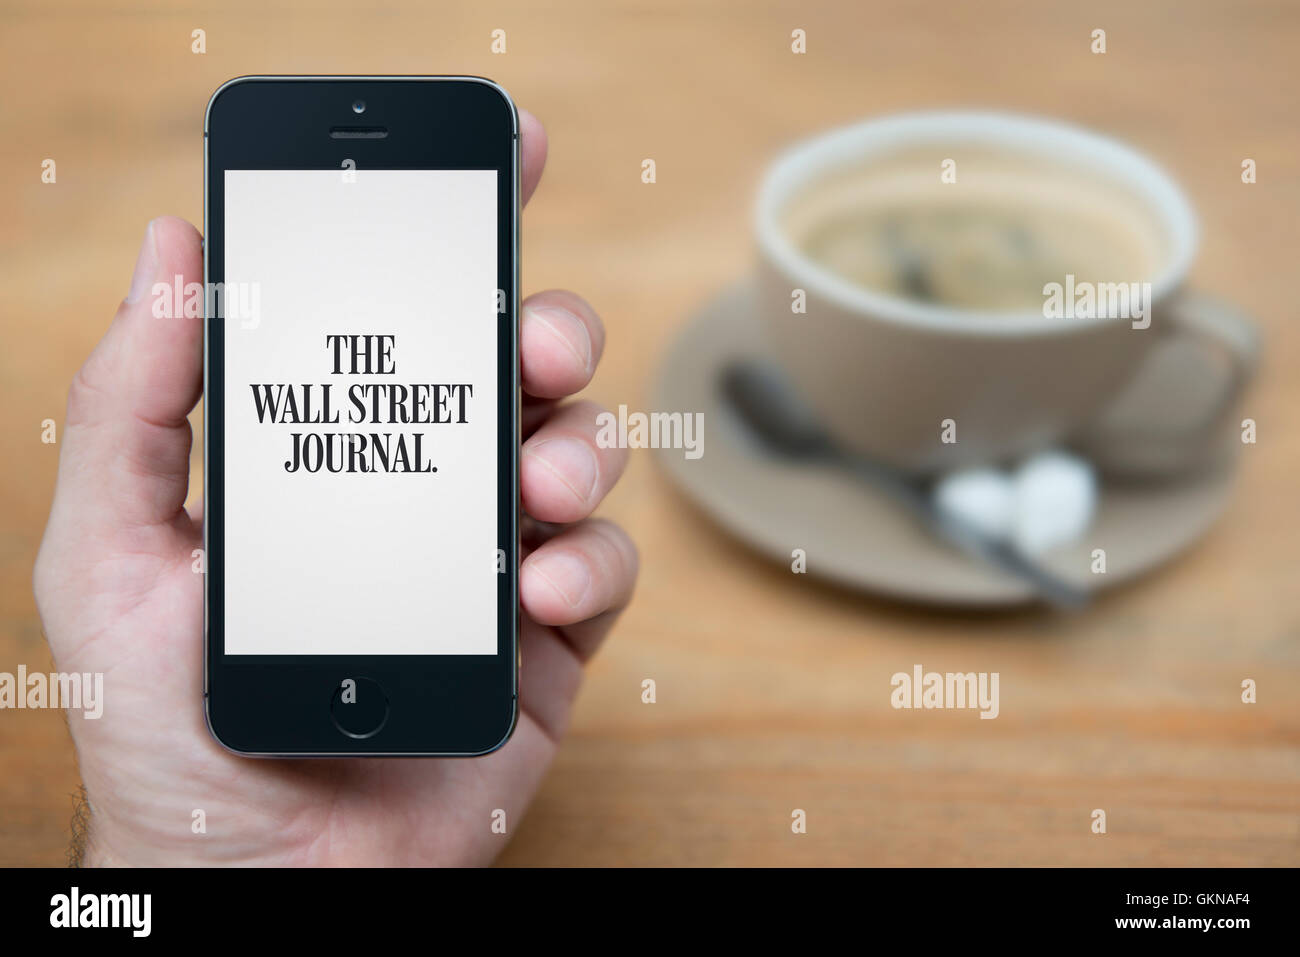 A man looks at his iPhone which displays the The Wall Street Journal logo, while sat with a cup of coffee (Editorial - Stock Image